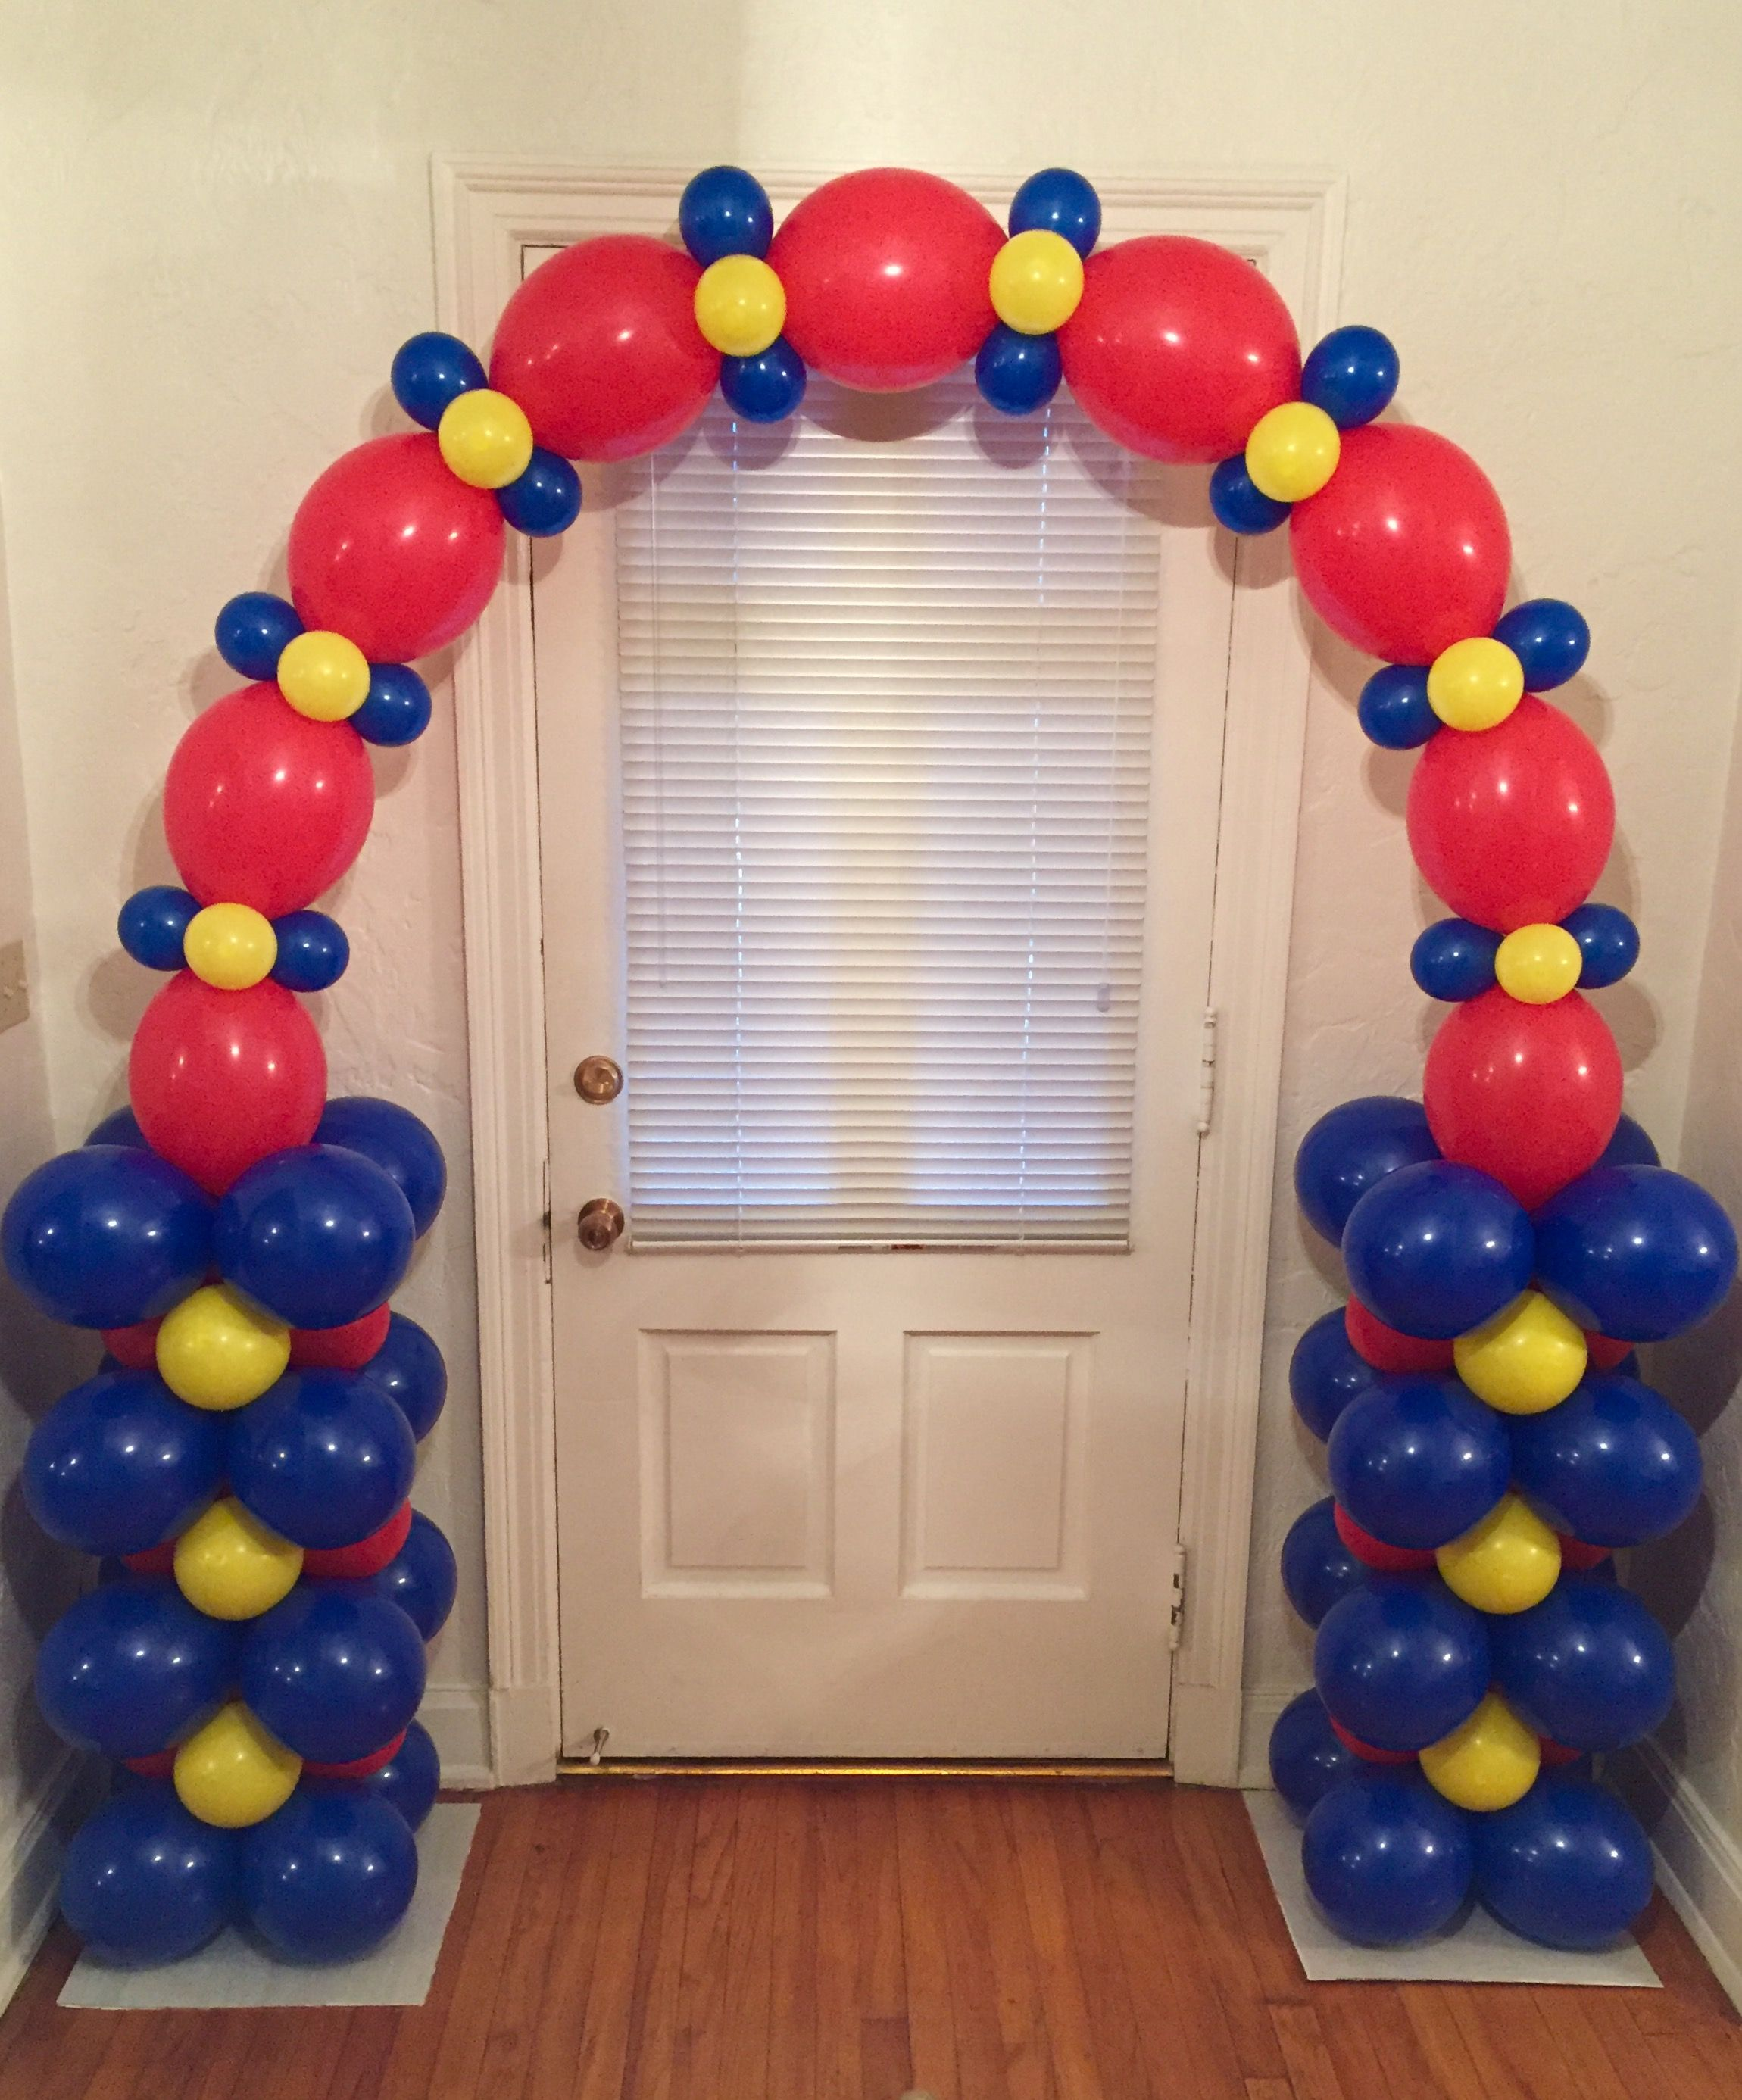 Balloon Arch air filled design uses no frame